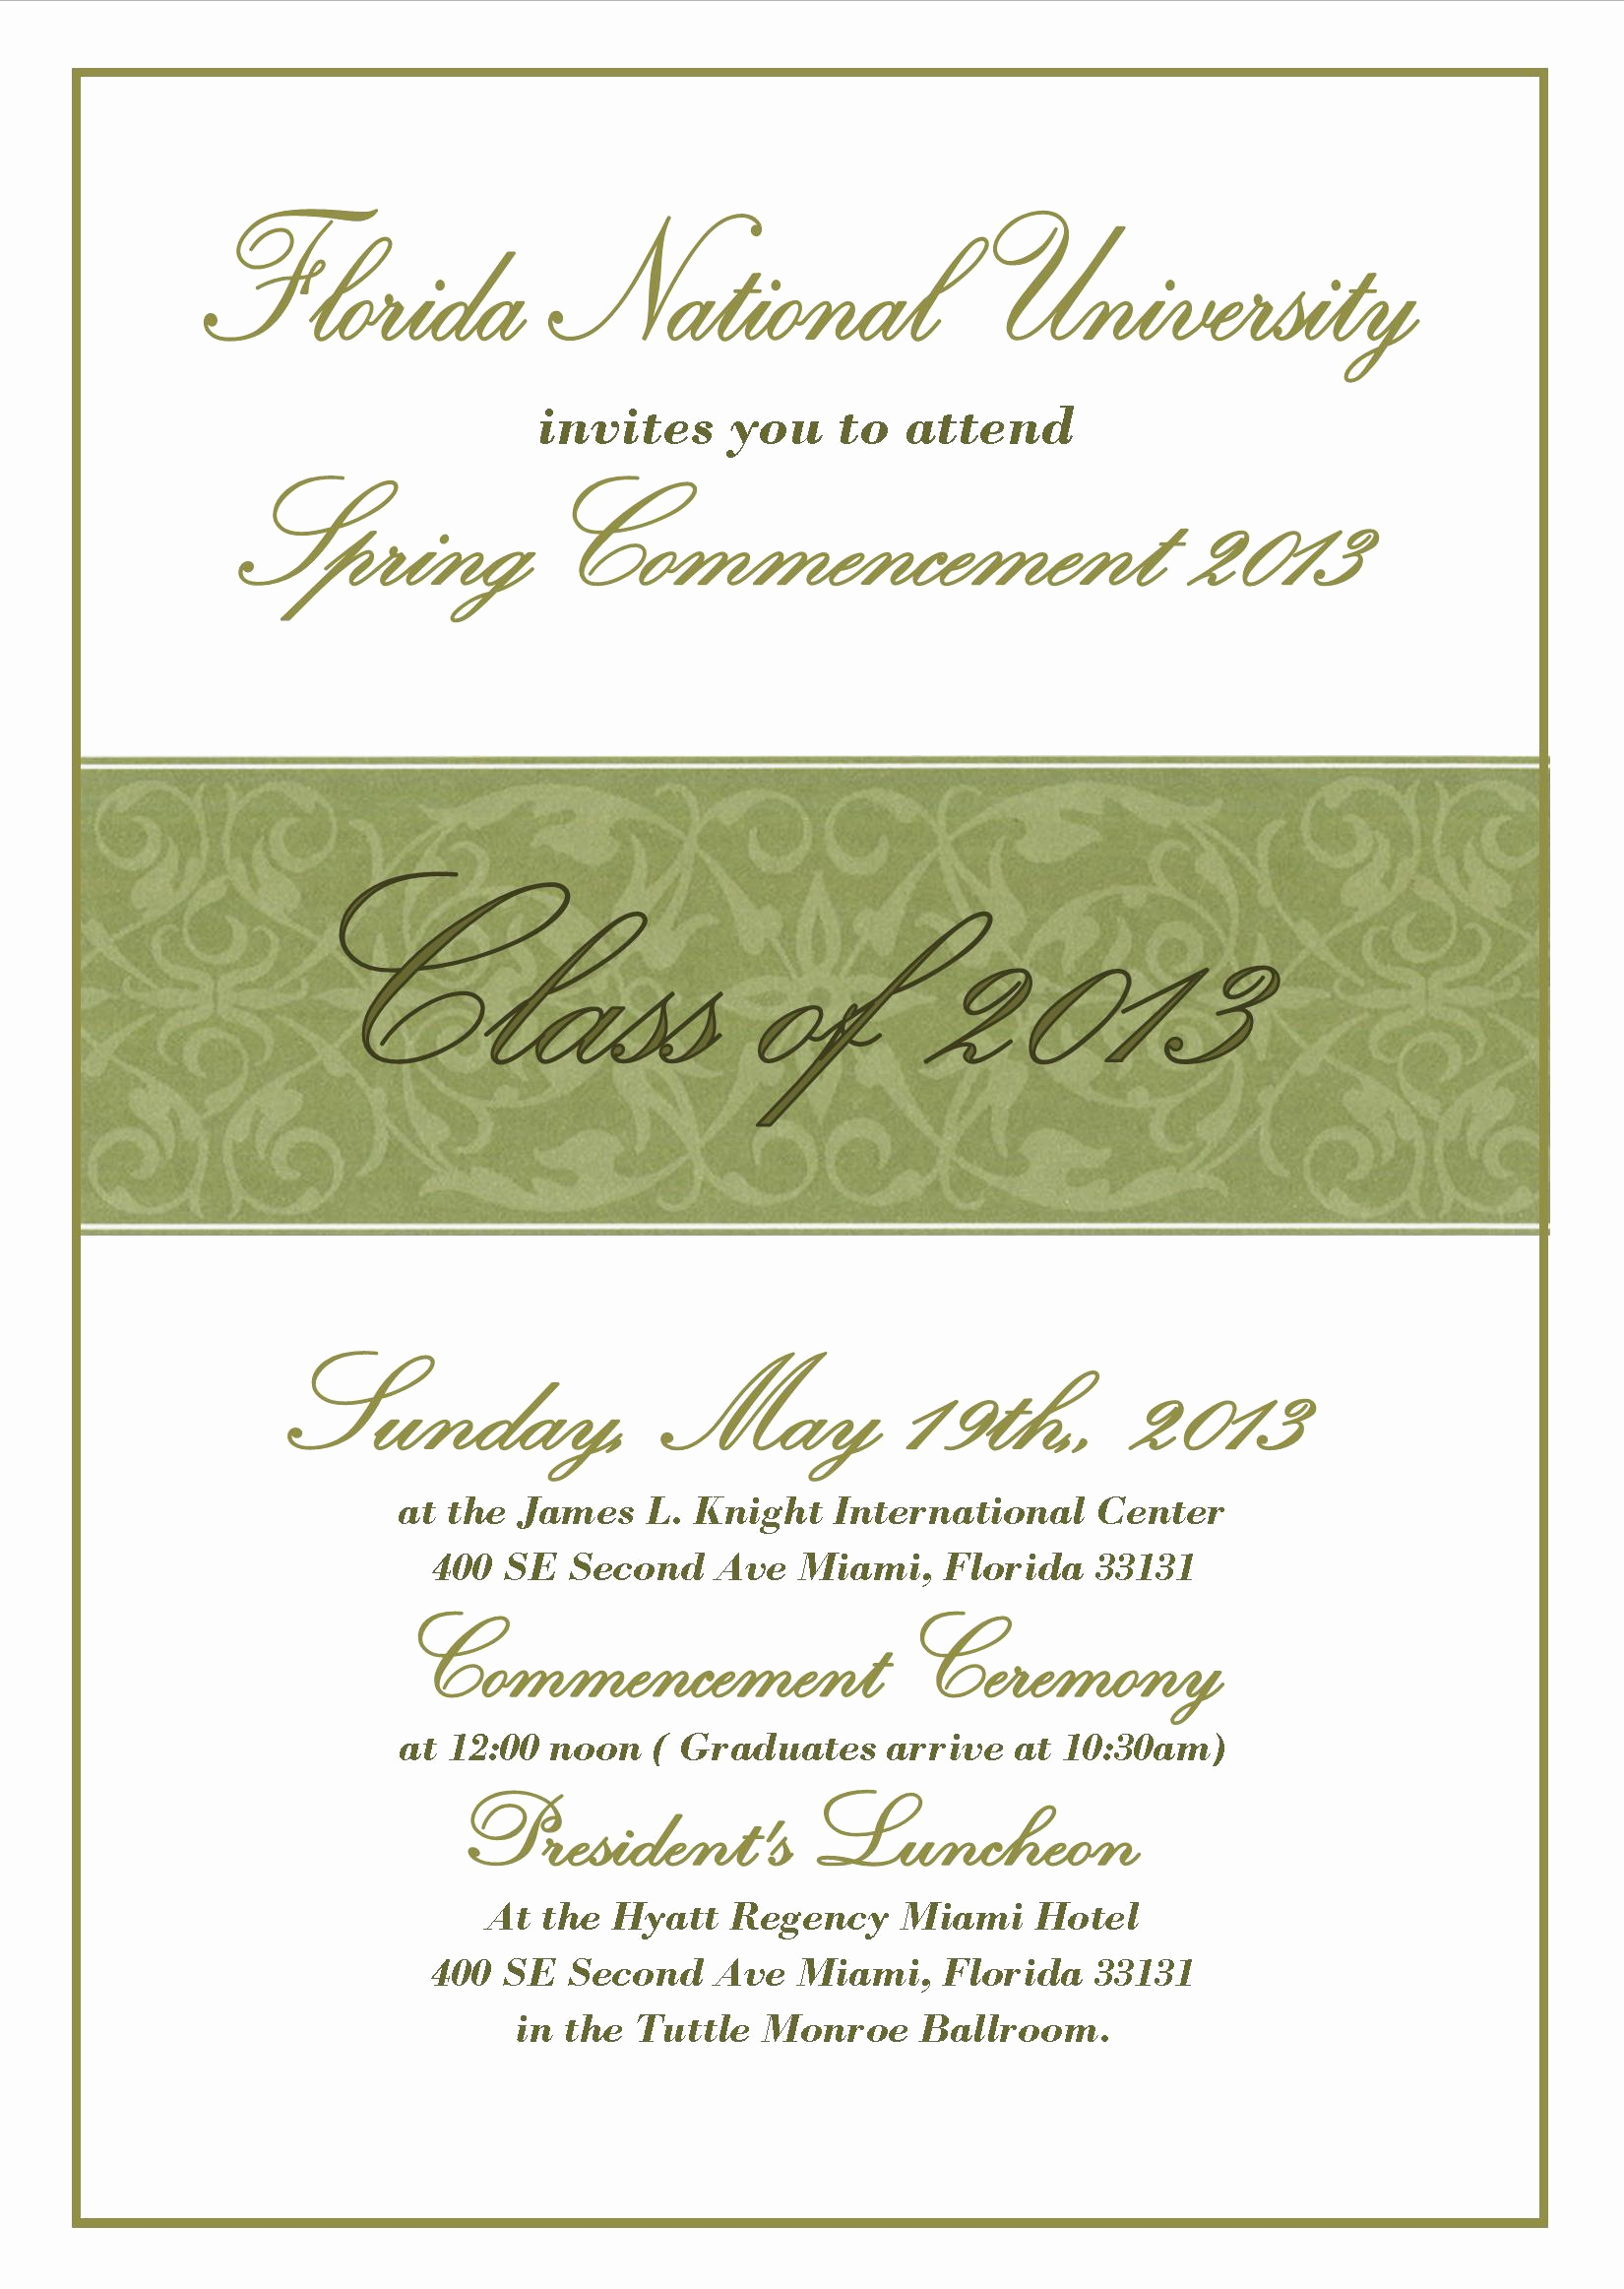 Graduation Ceremony Invitation Wording Beautiful Mencement Ceremony Invitation